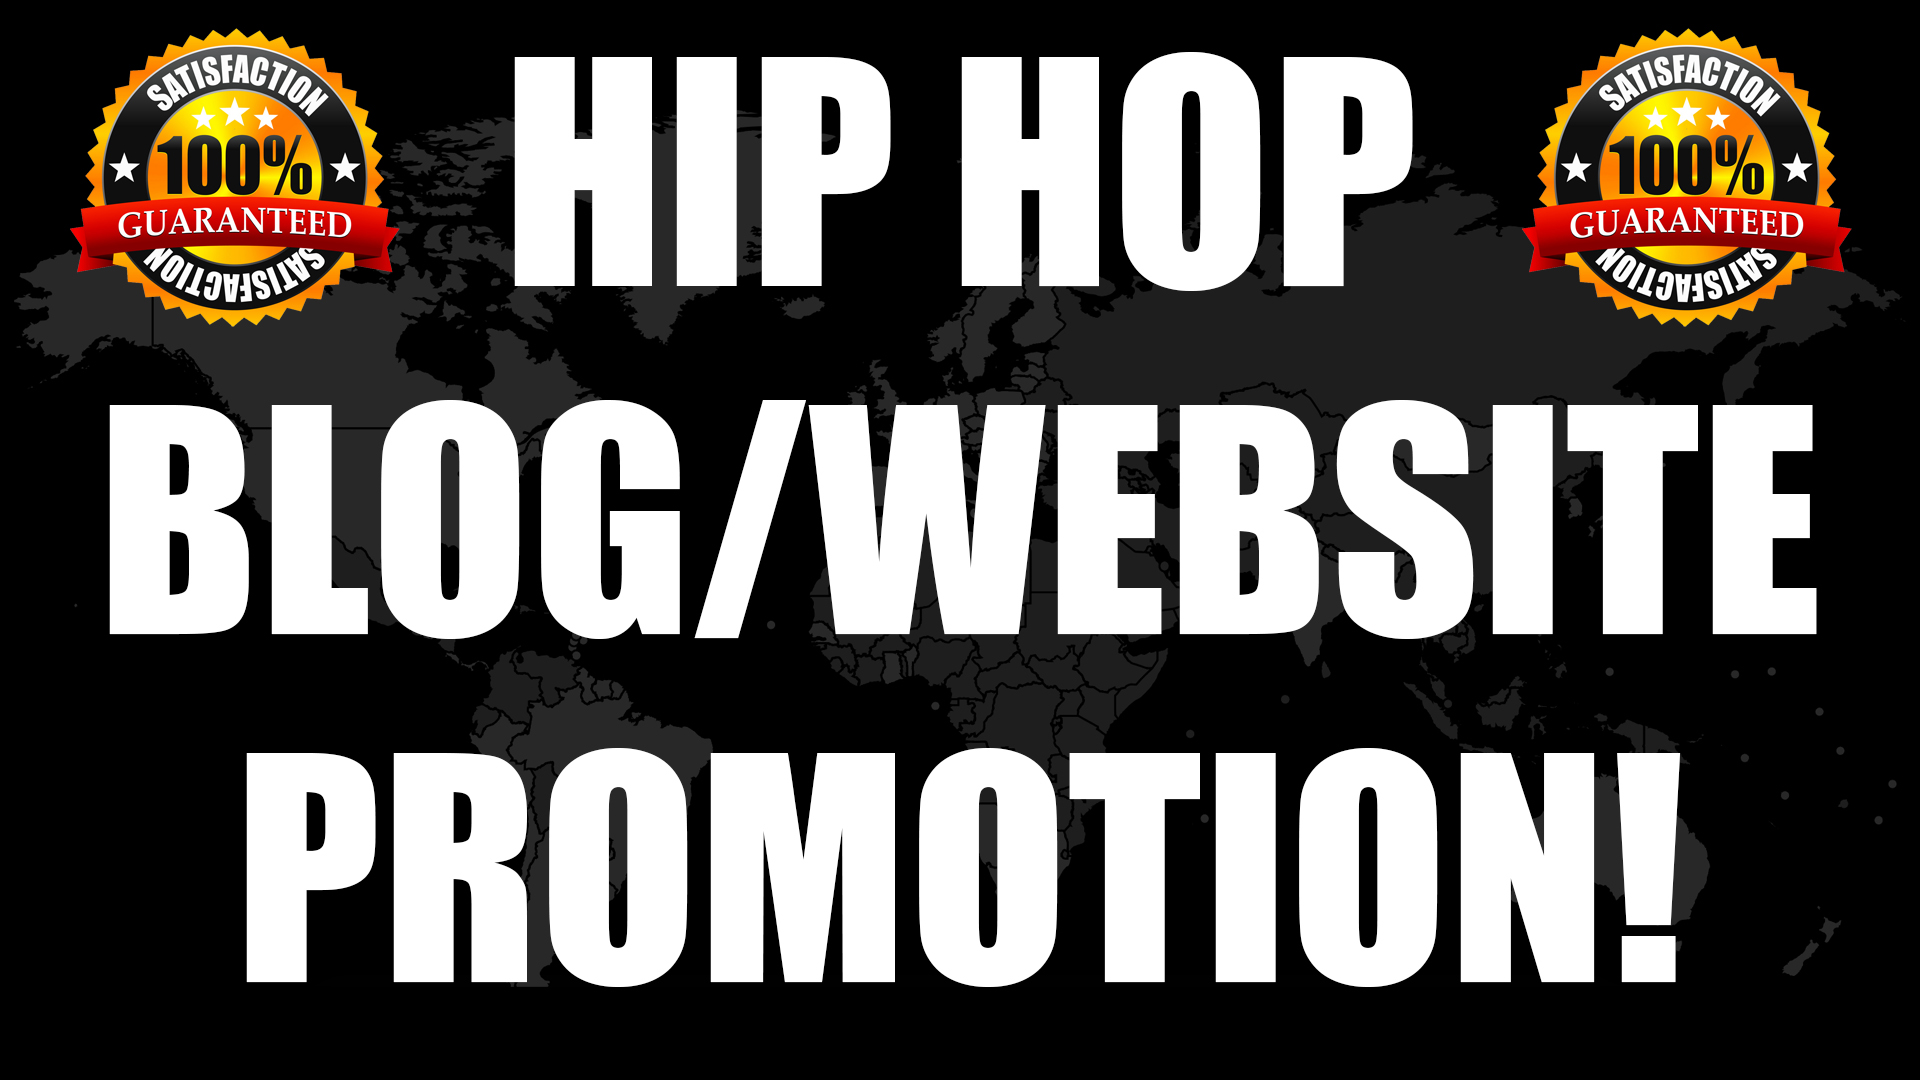 We'll Submit Your Songs To 50 Top Hip Hop Music Blogs And Websites